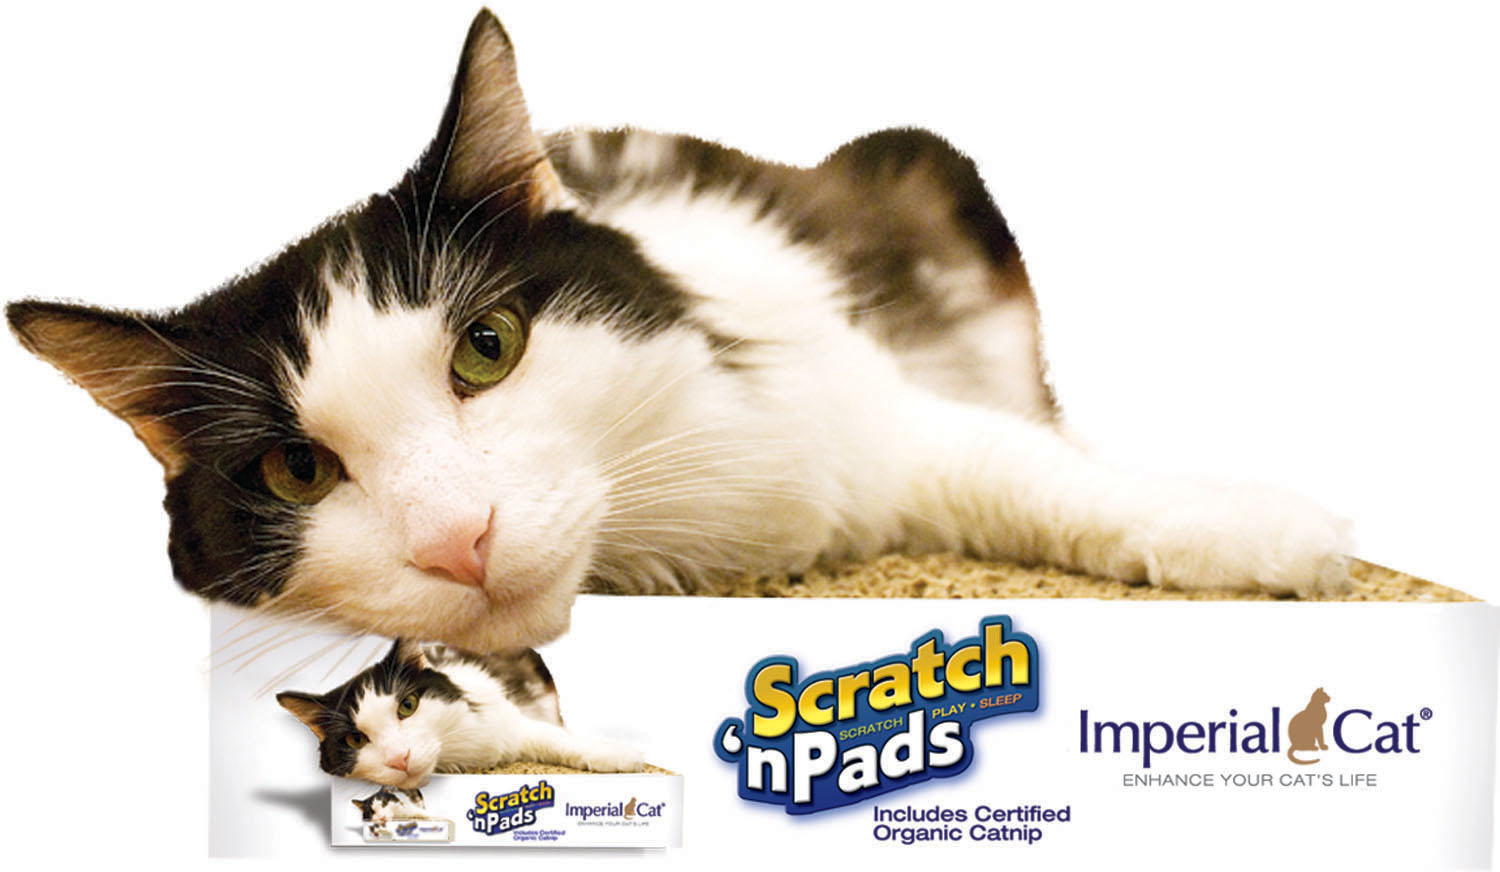 Imperial Cat Mega Scratch 'n Pad